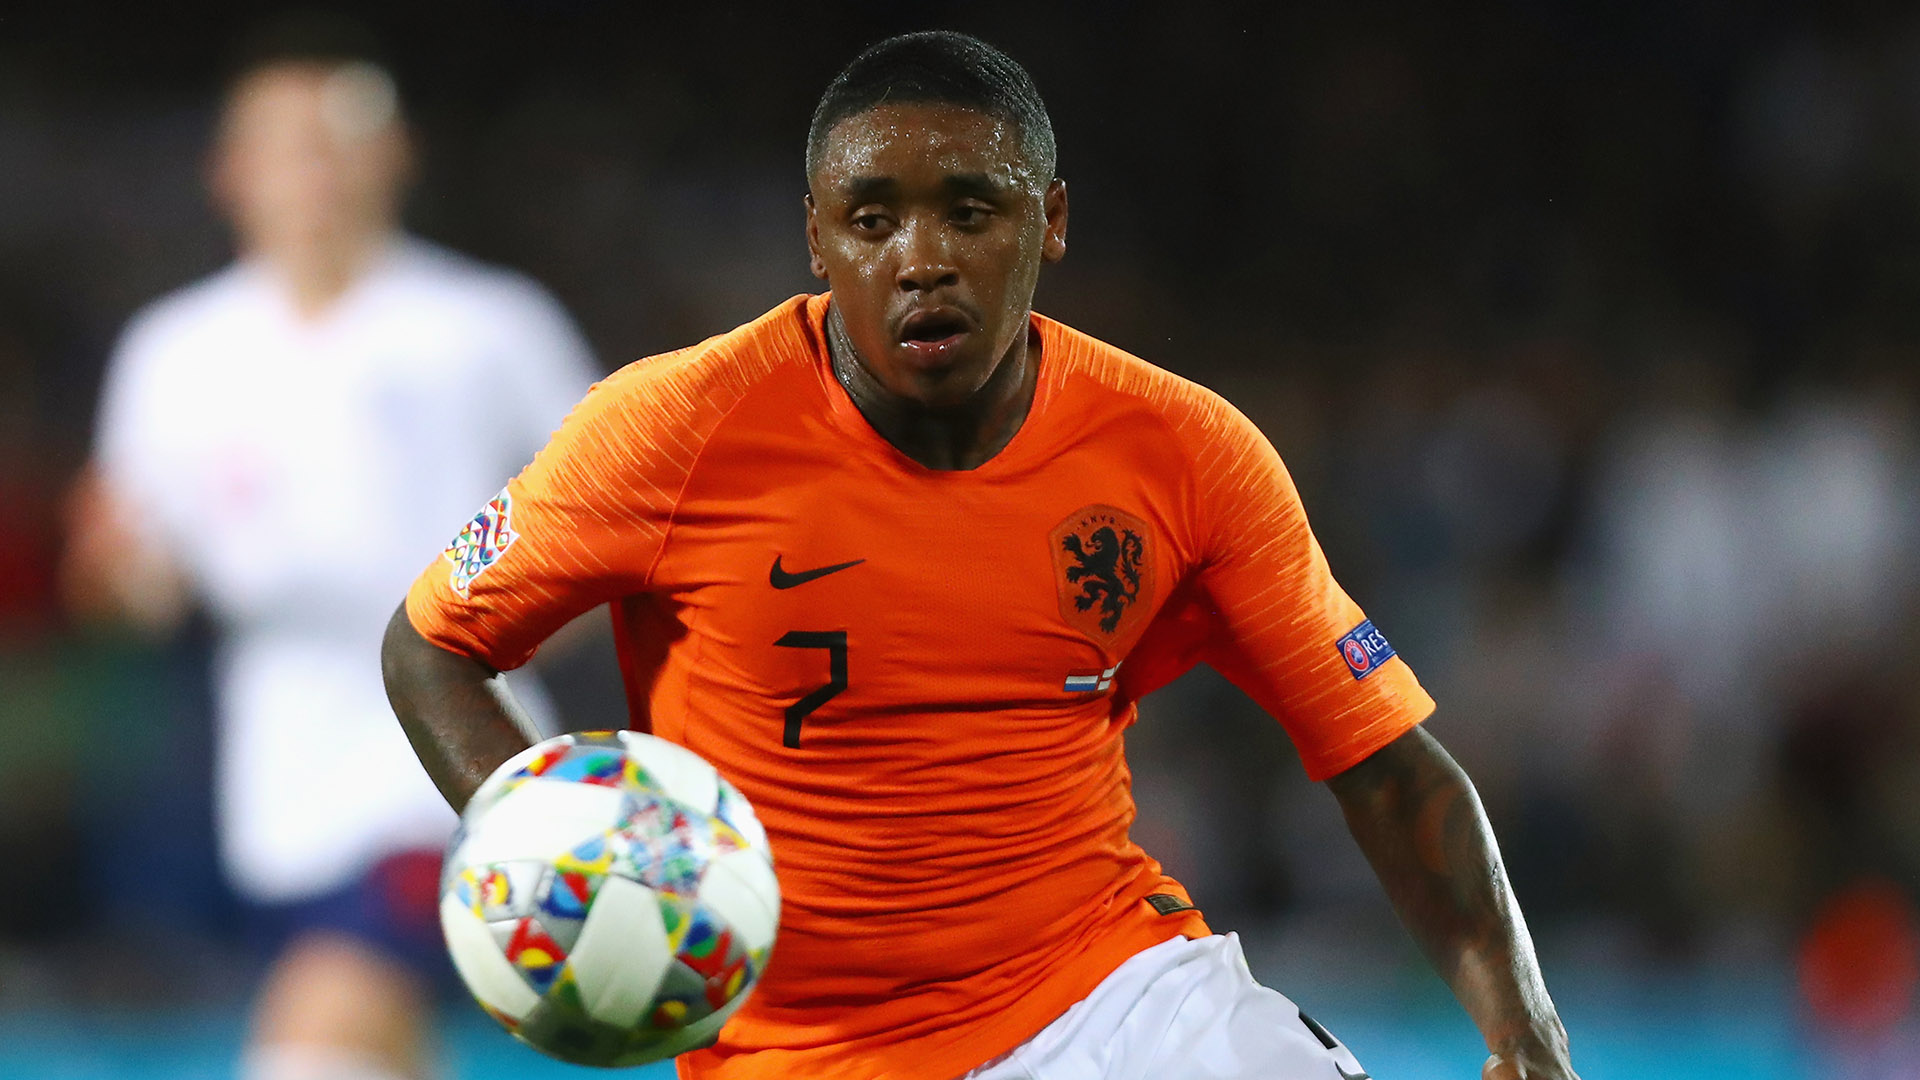 Bergwijn wants to win the Champions League with Tottenham after completing £25m move from PSV